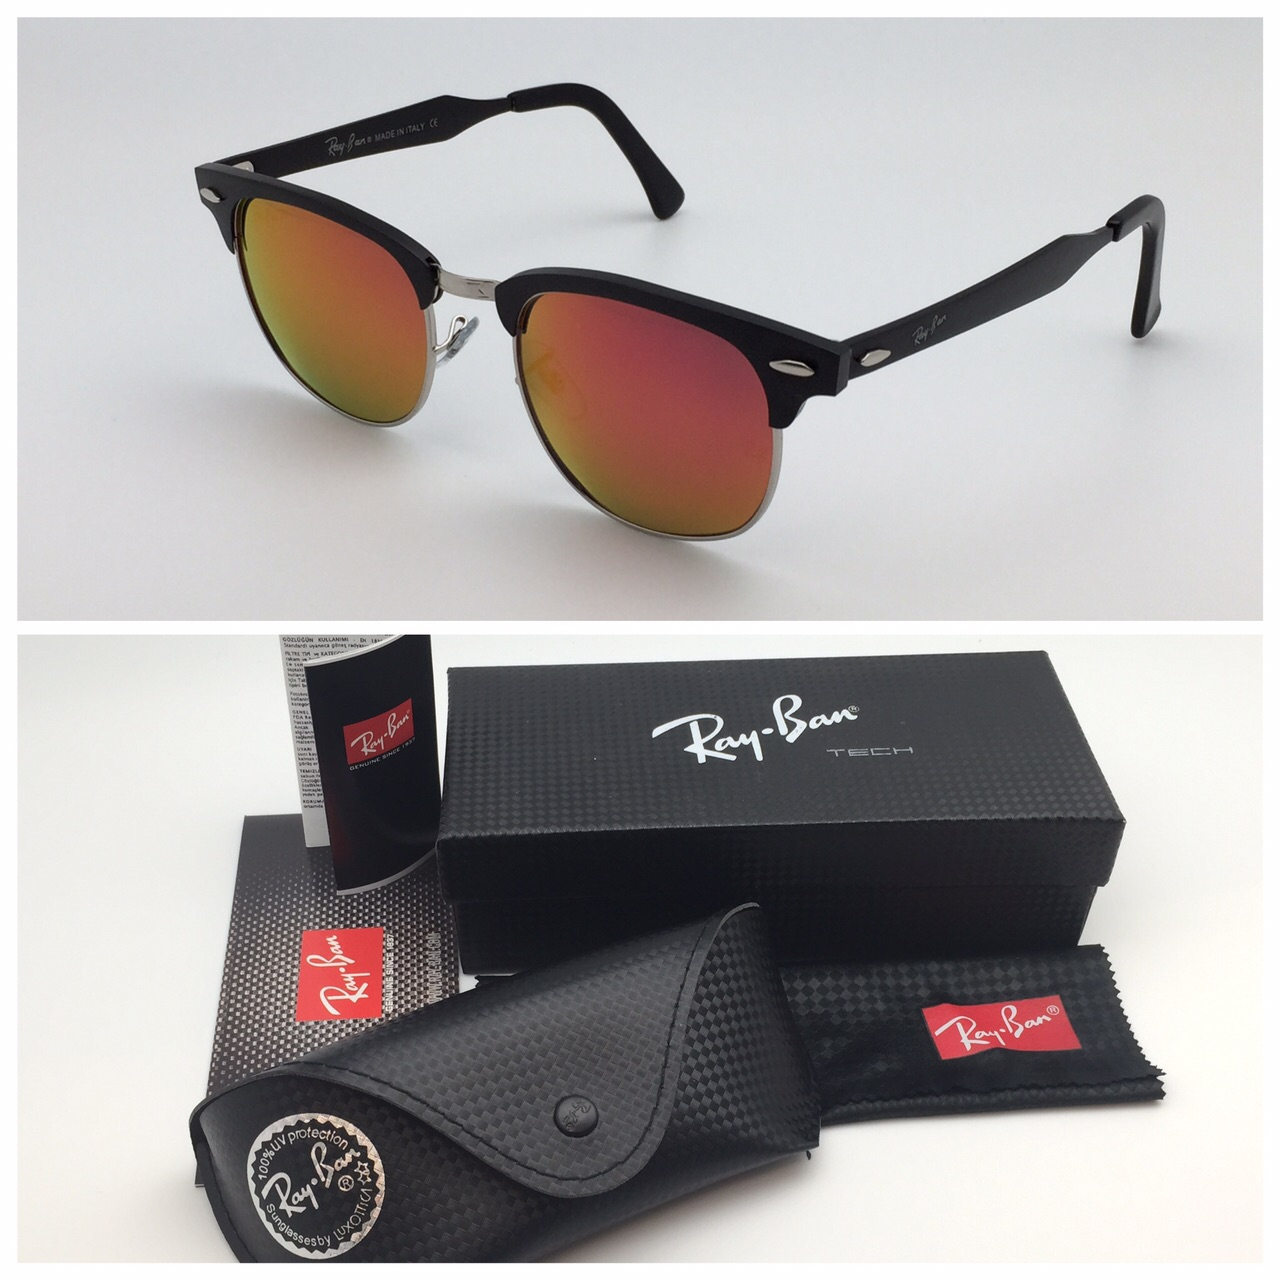 top quality sunglasses ray ban aviator kw super bf24c 86375 1284a035d6